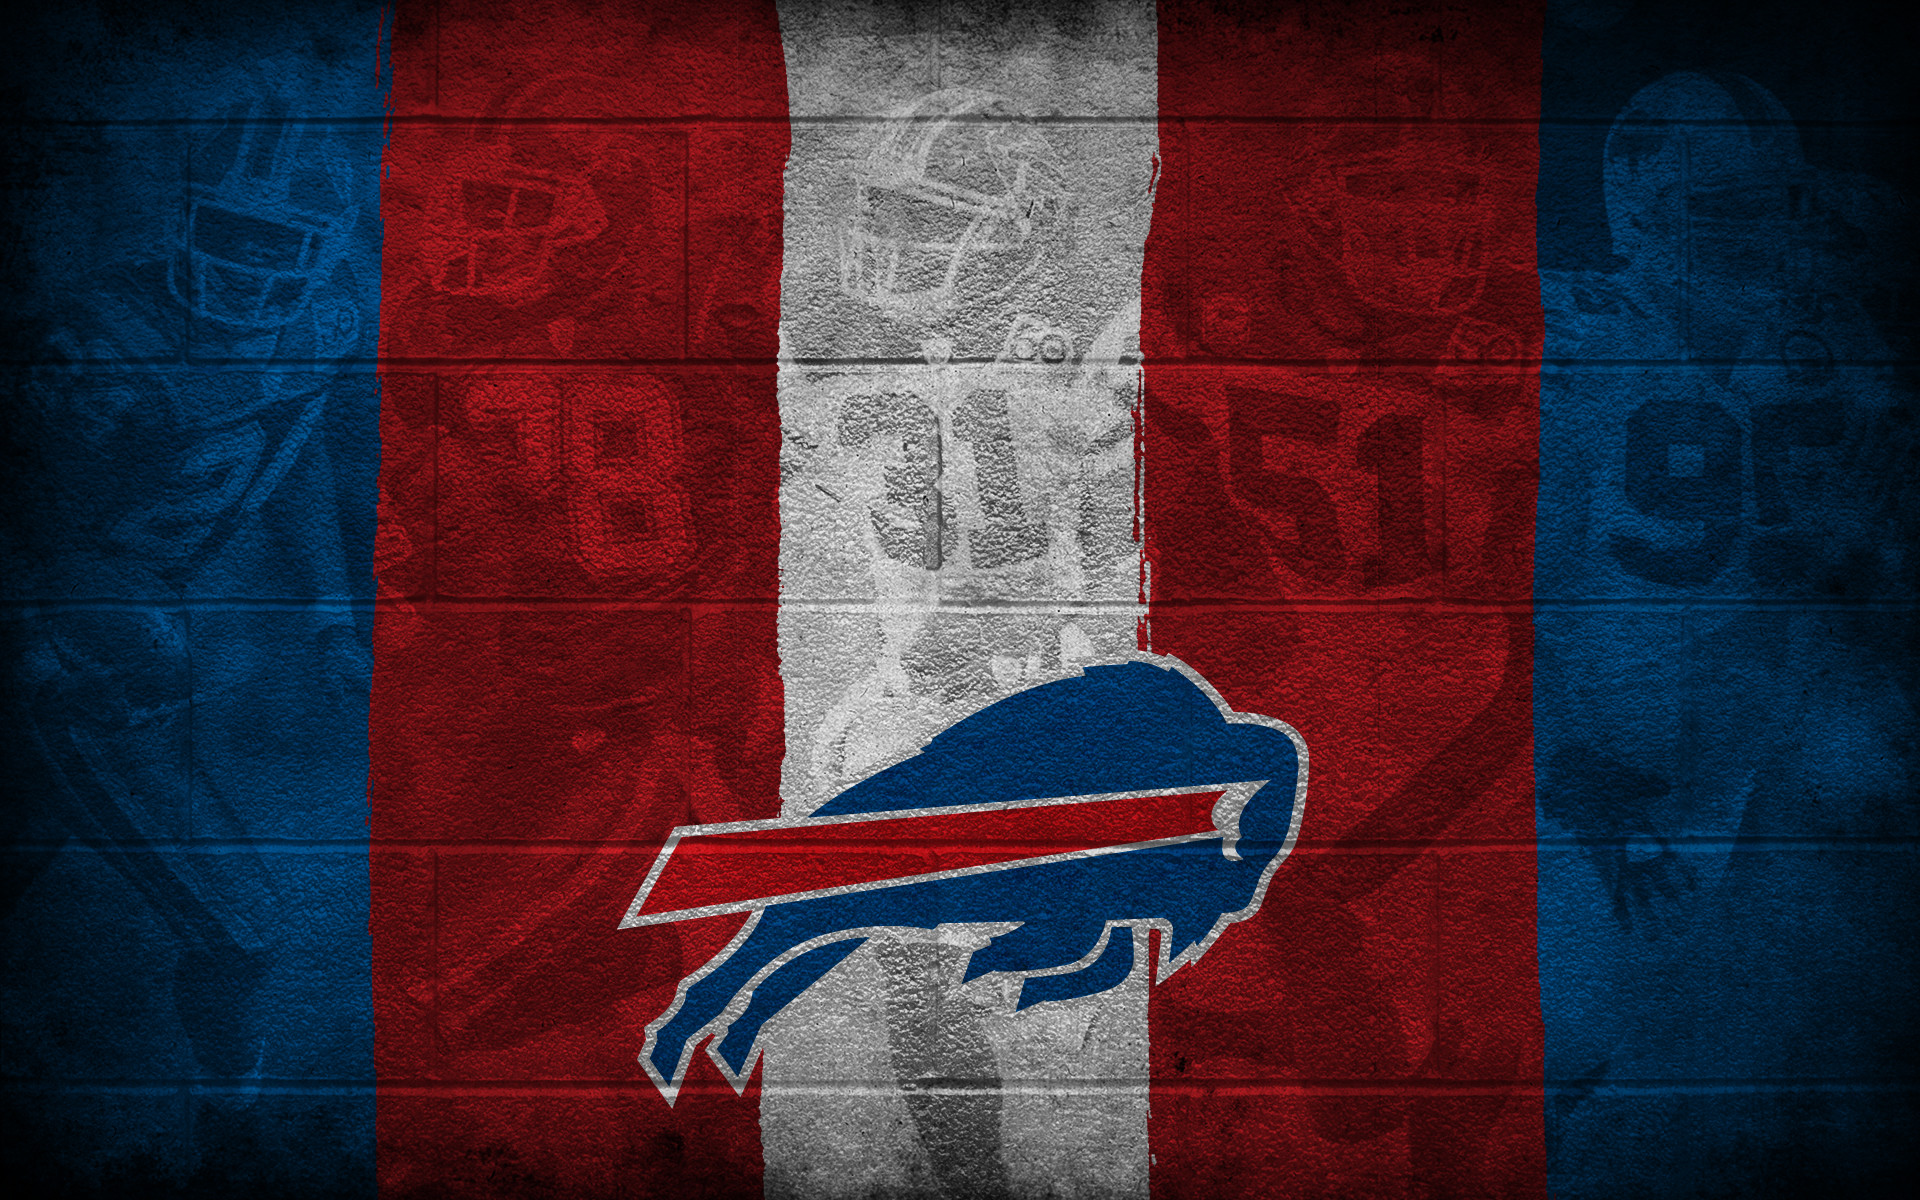 buffalo bills logo wallpaper